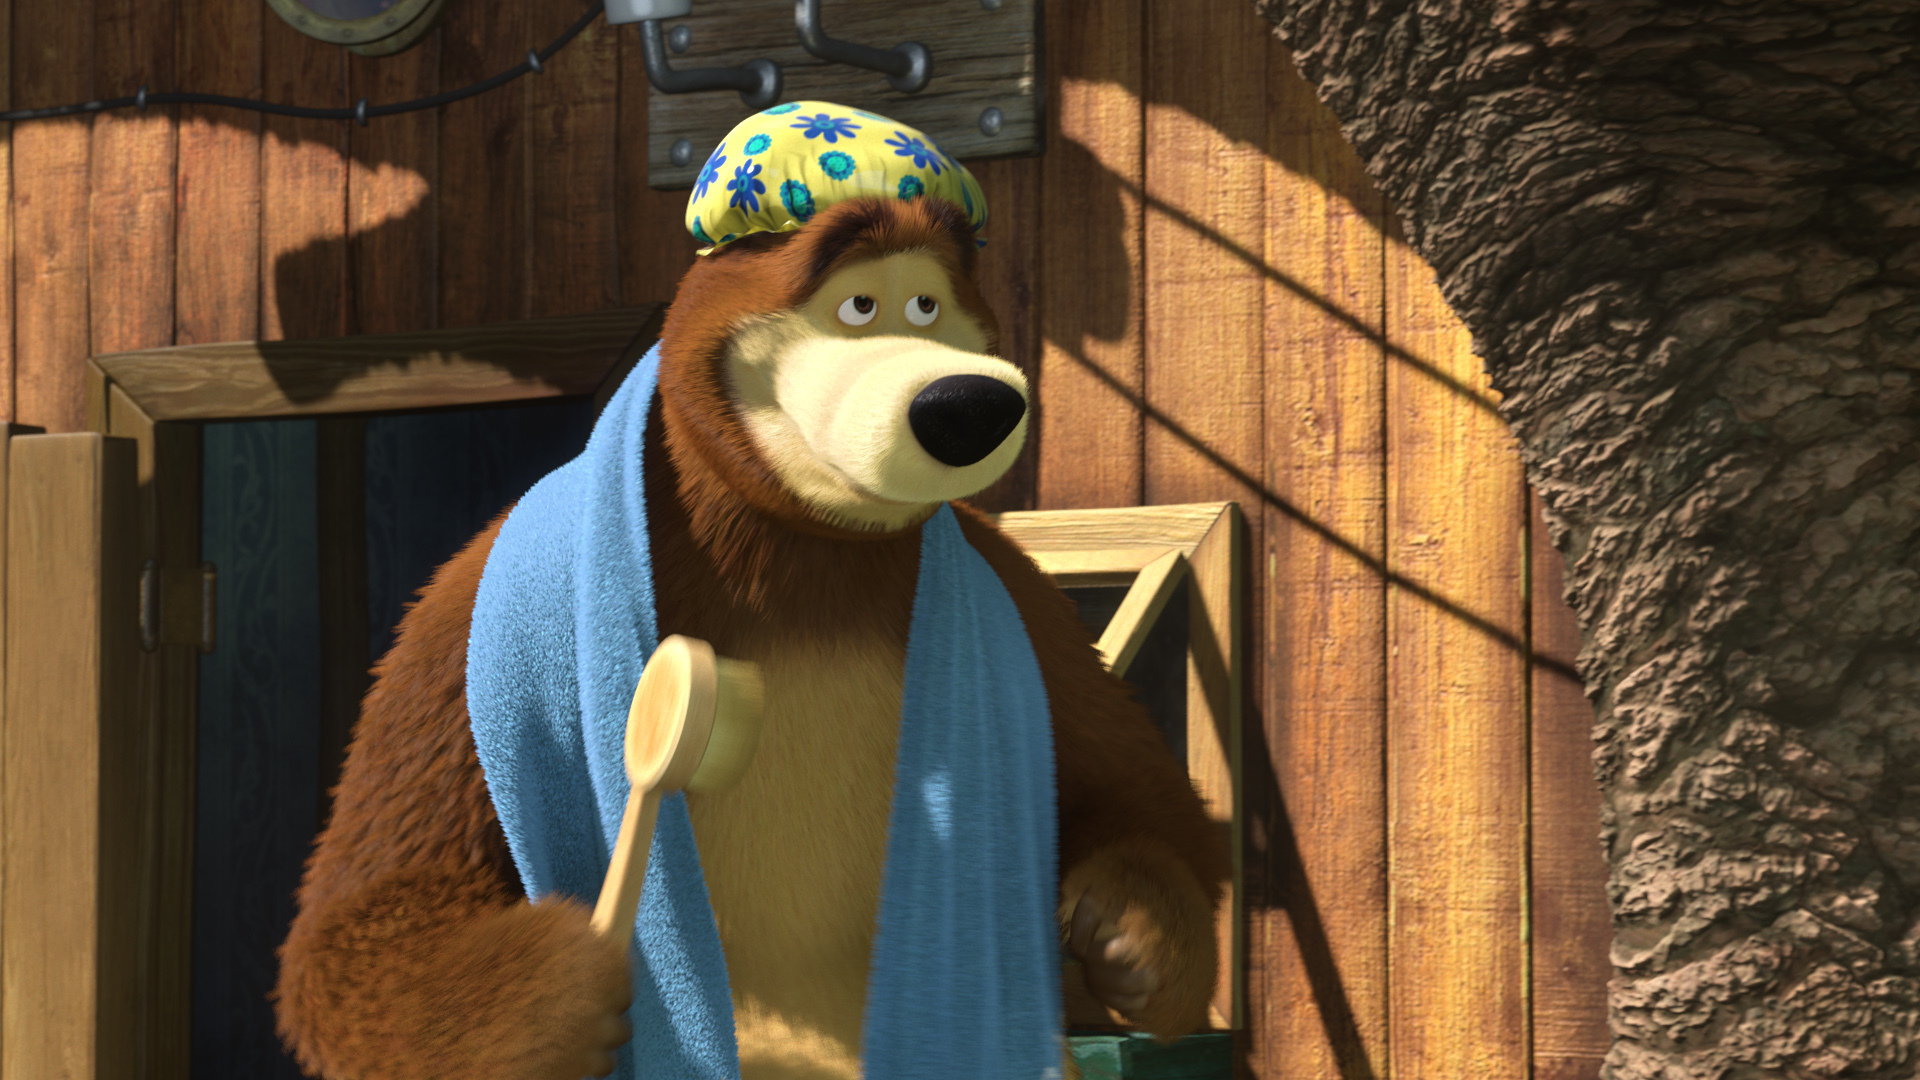 Bear with a brush and towel